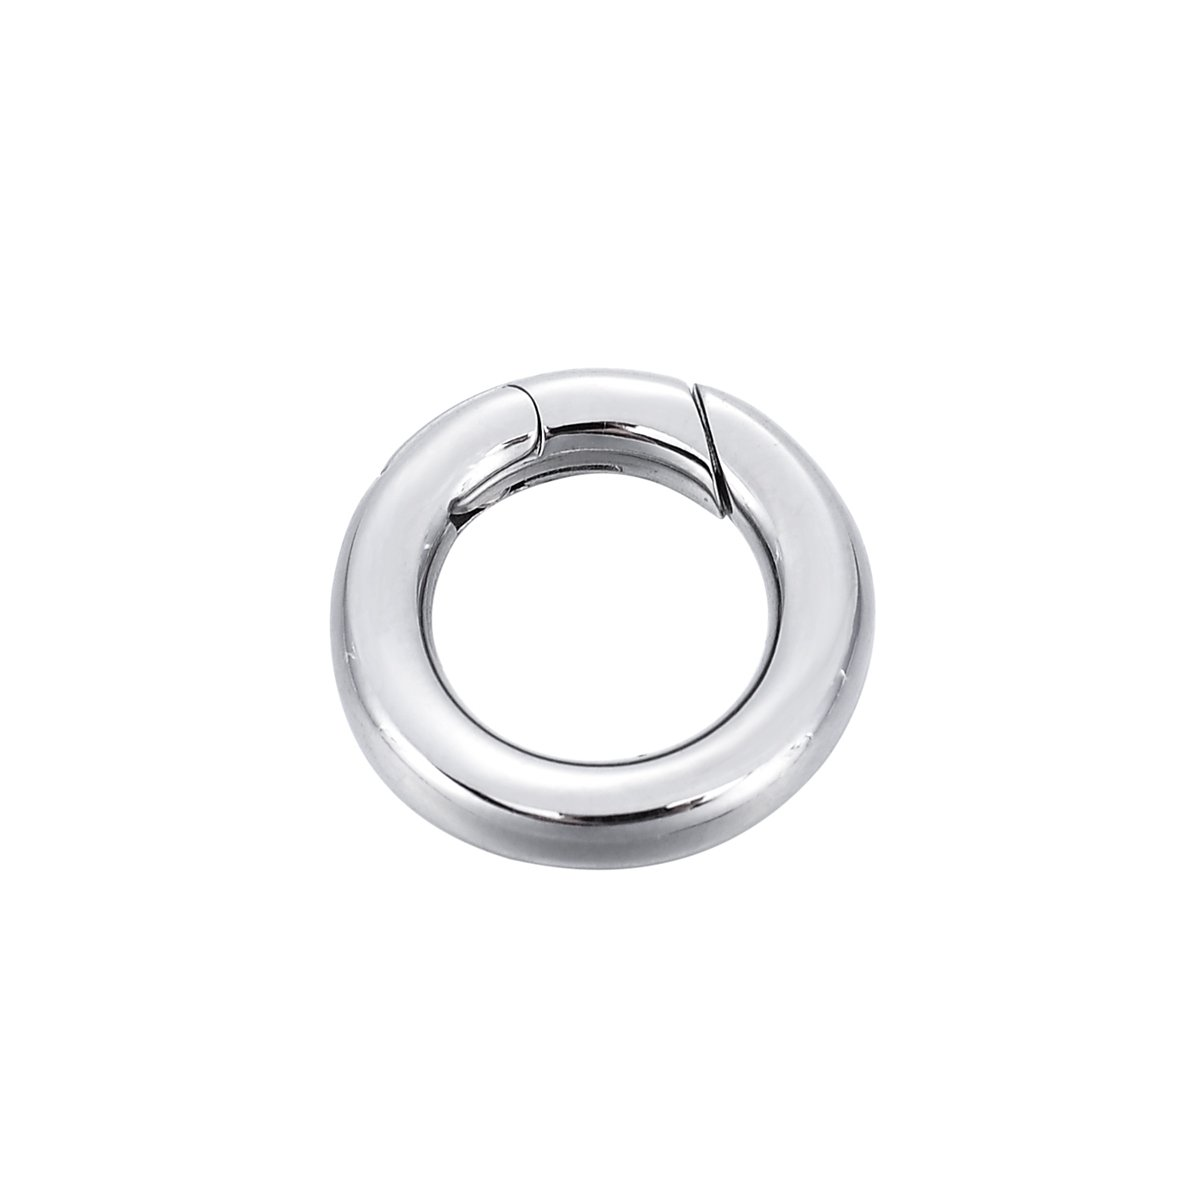 1PCS Stainless Steel Polished Round Enhancer Shortener Ring Spring Clasp for Jewellery Making 14.5mm Yin Feng 0AF0SA0G0M